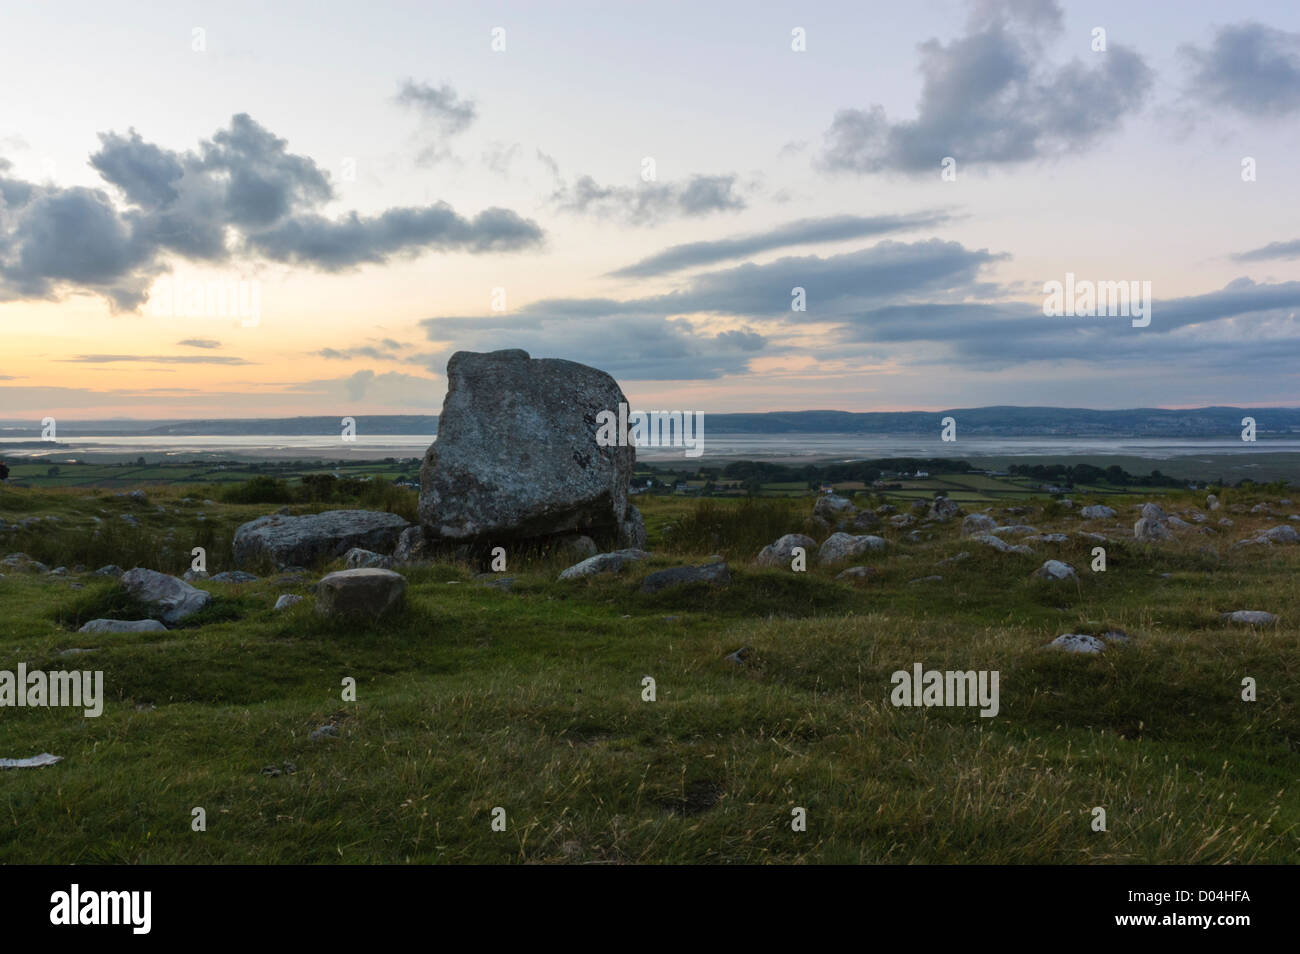 Arthur's Stone, Maen Ceti in Welsh, possibly a neolithic chambered tomb, on Cefn Bryn in Gower, South Wales, - Stock Image